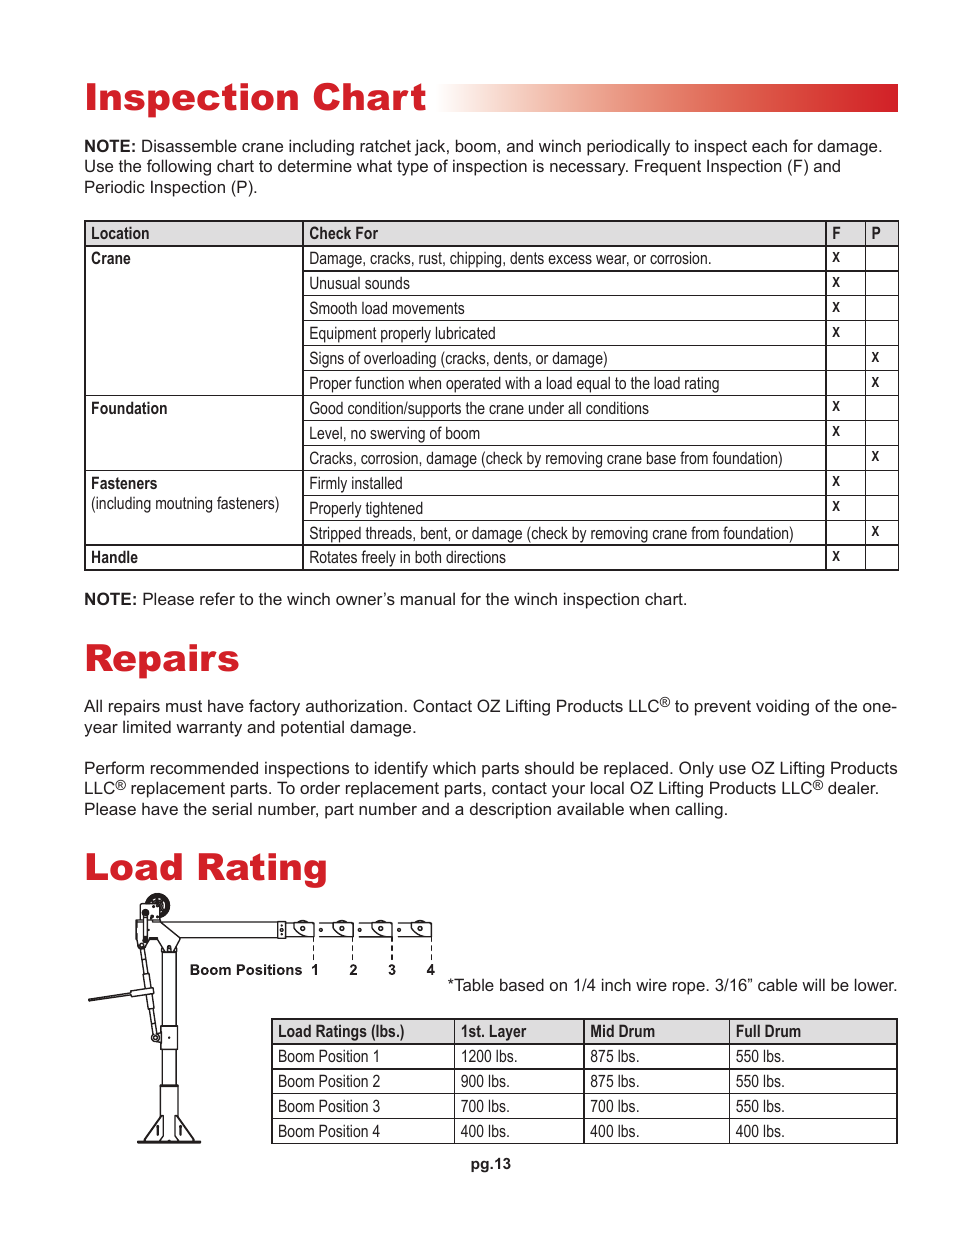 Inspection chart, Repairs, Load rating | OZ Lifting Products ...